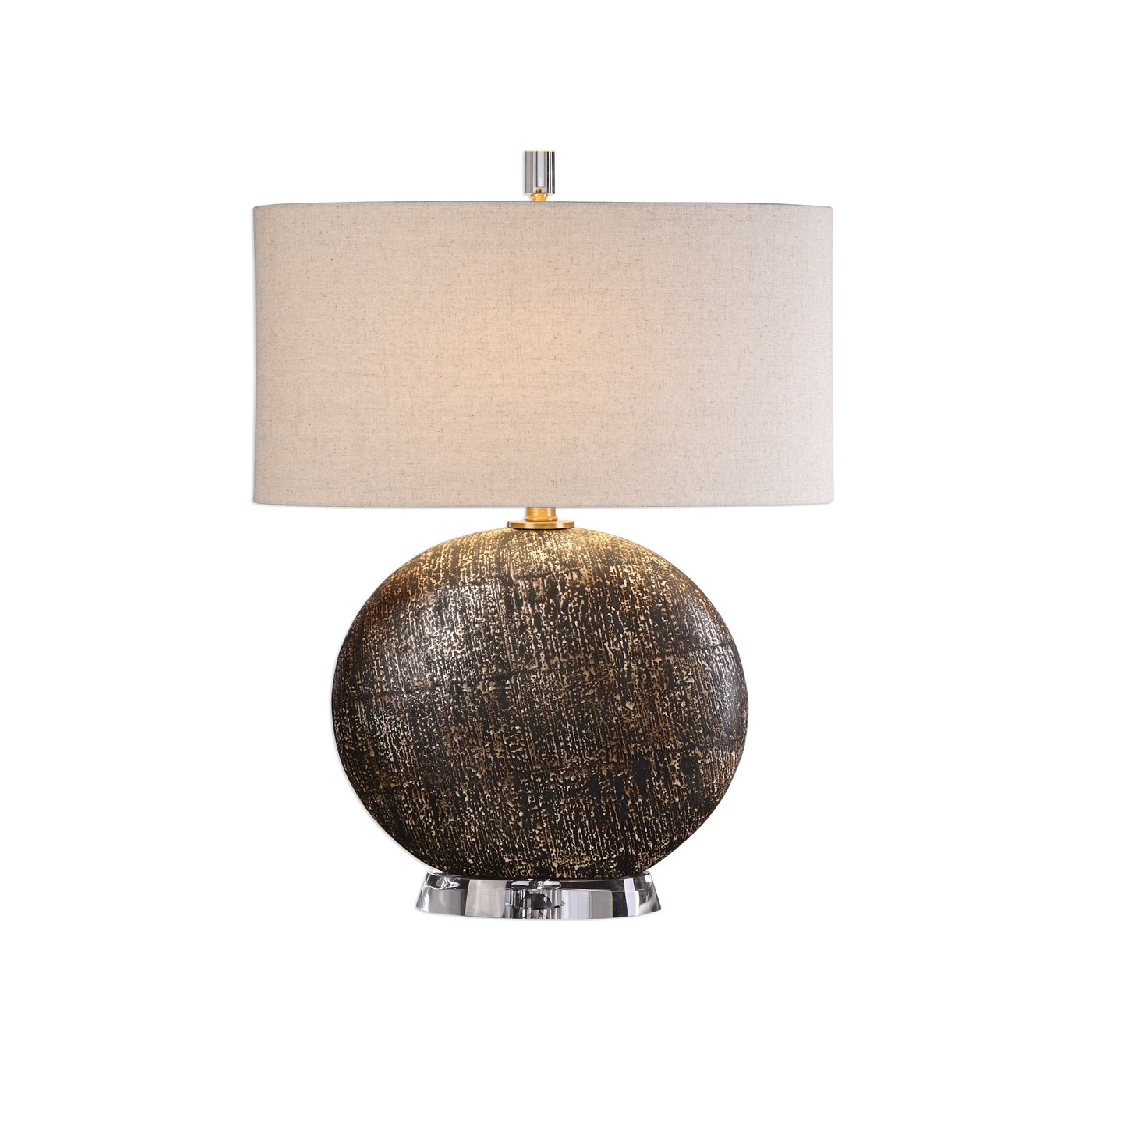 Uttermost Chalandri Table Lamp Brown Rustic Contemporary Distressed